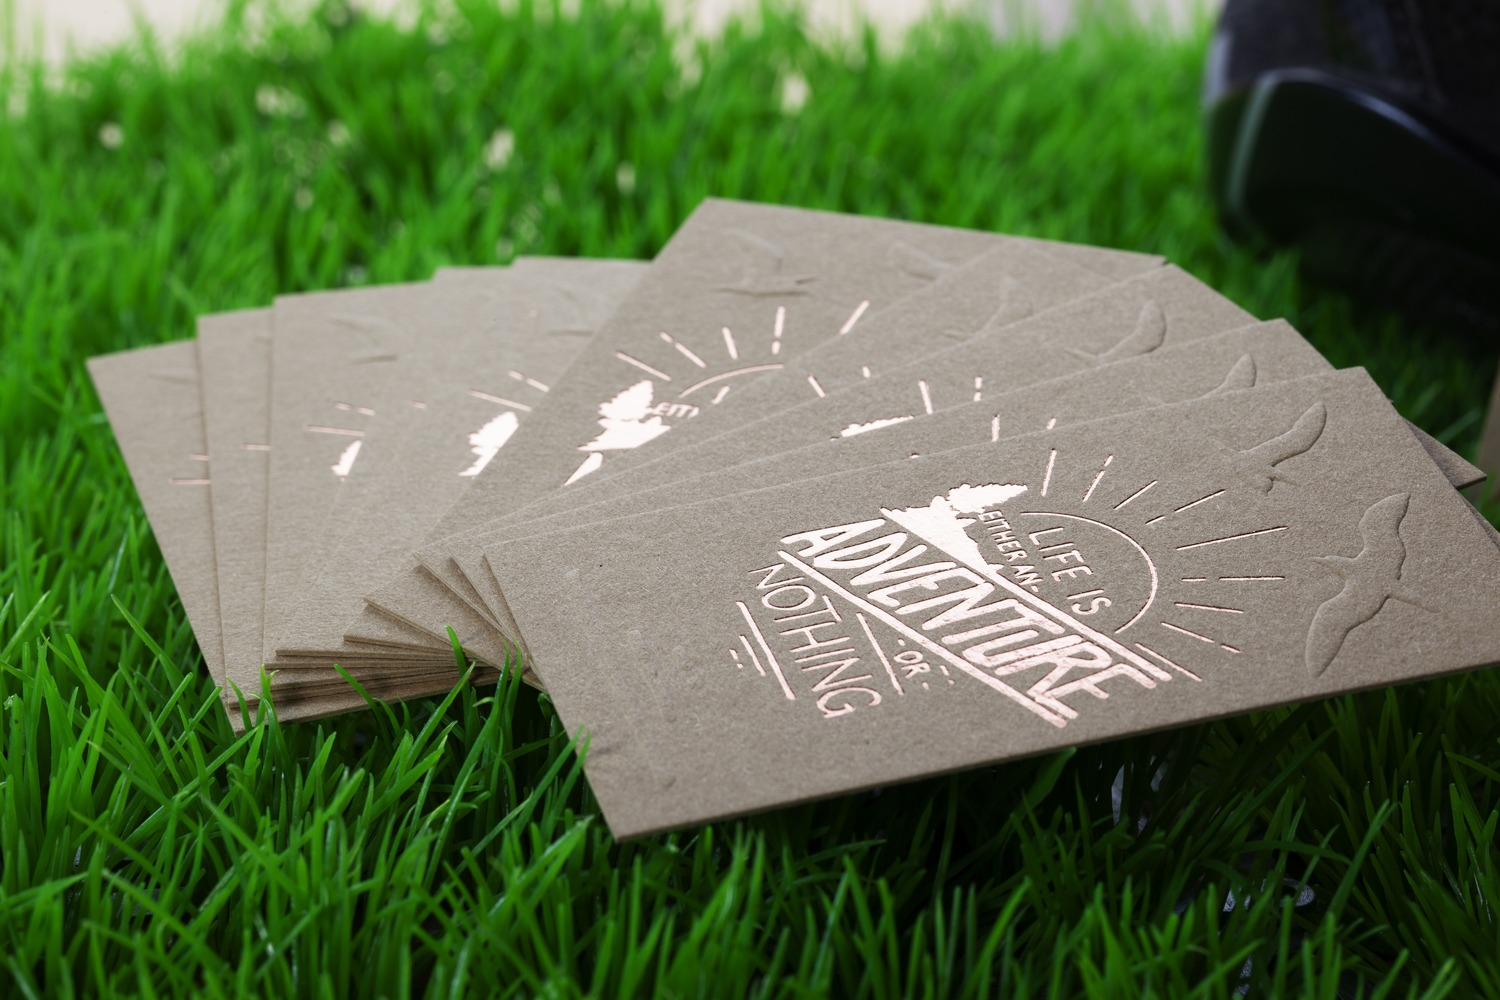 hotfoil and embossing